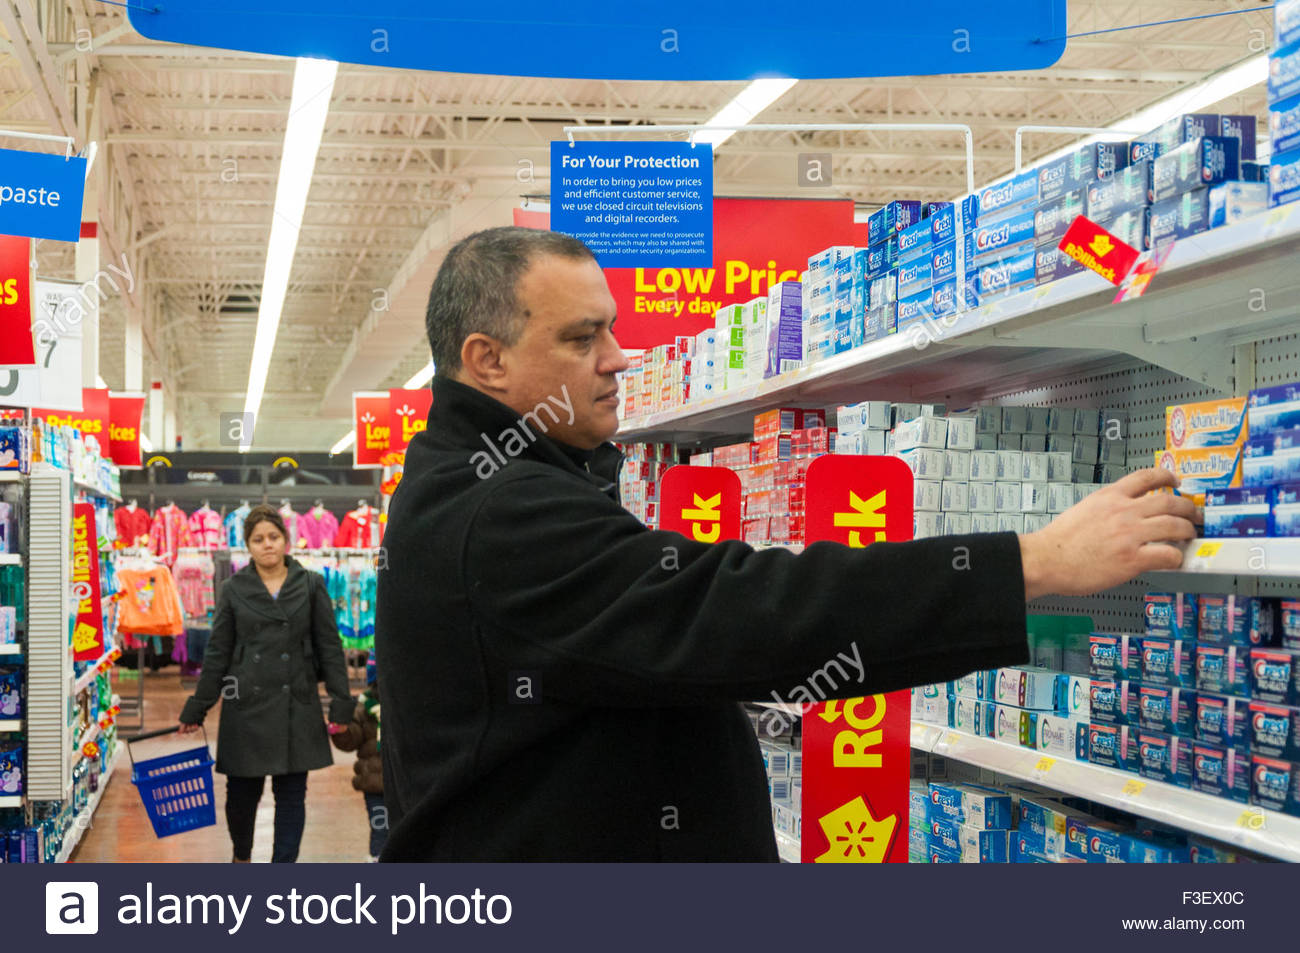 Wal Mart Store Stock Photos & Wal Mart Store Stock Images - Alamy